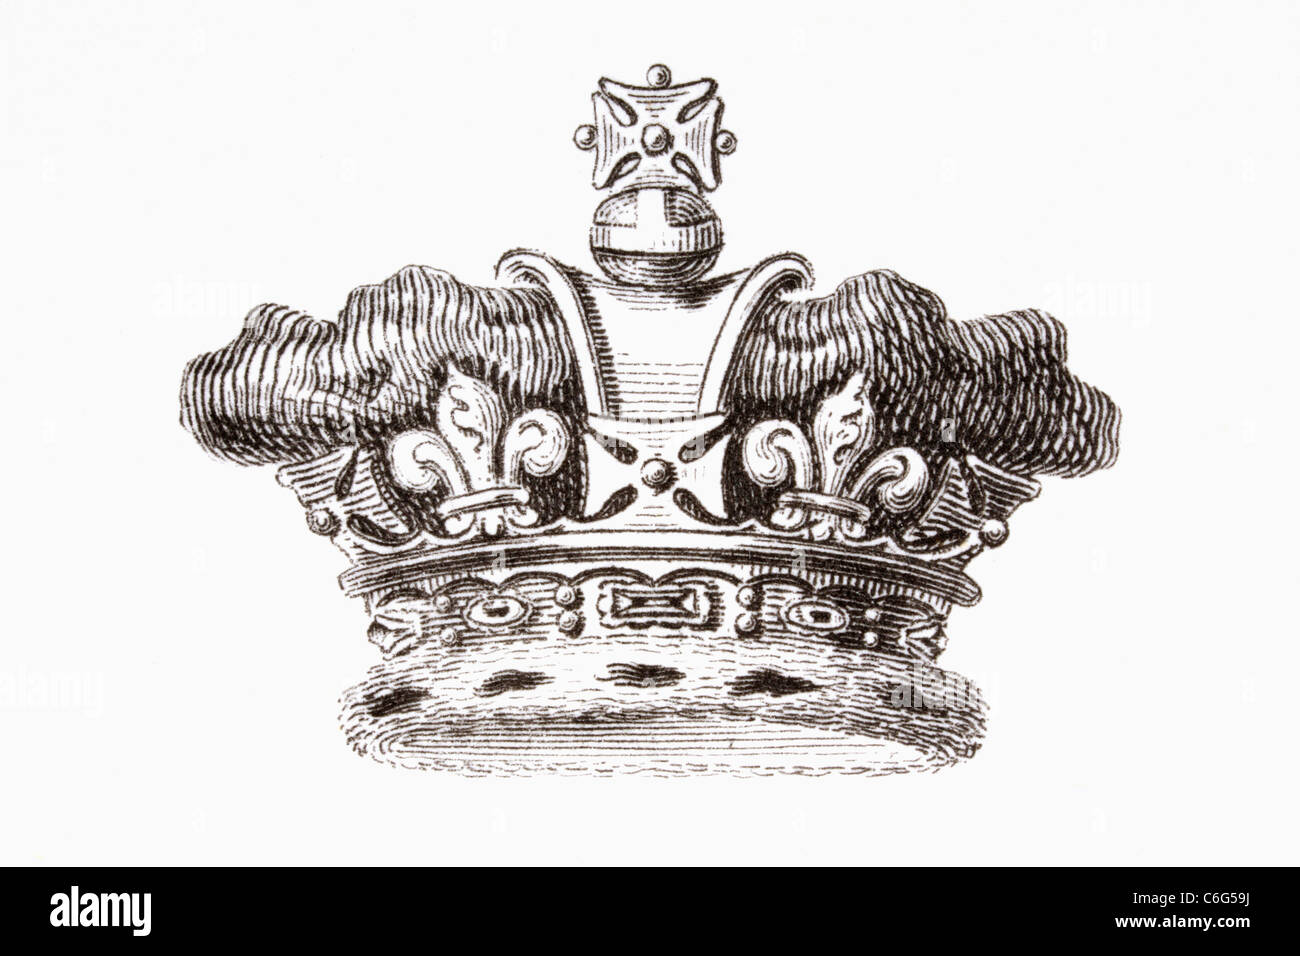 The crown of the Prince of Wales. - Stock Image